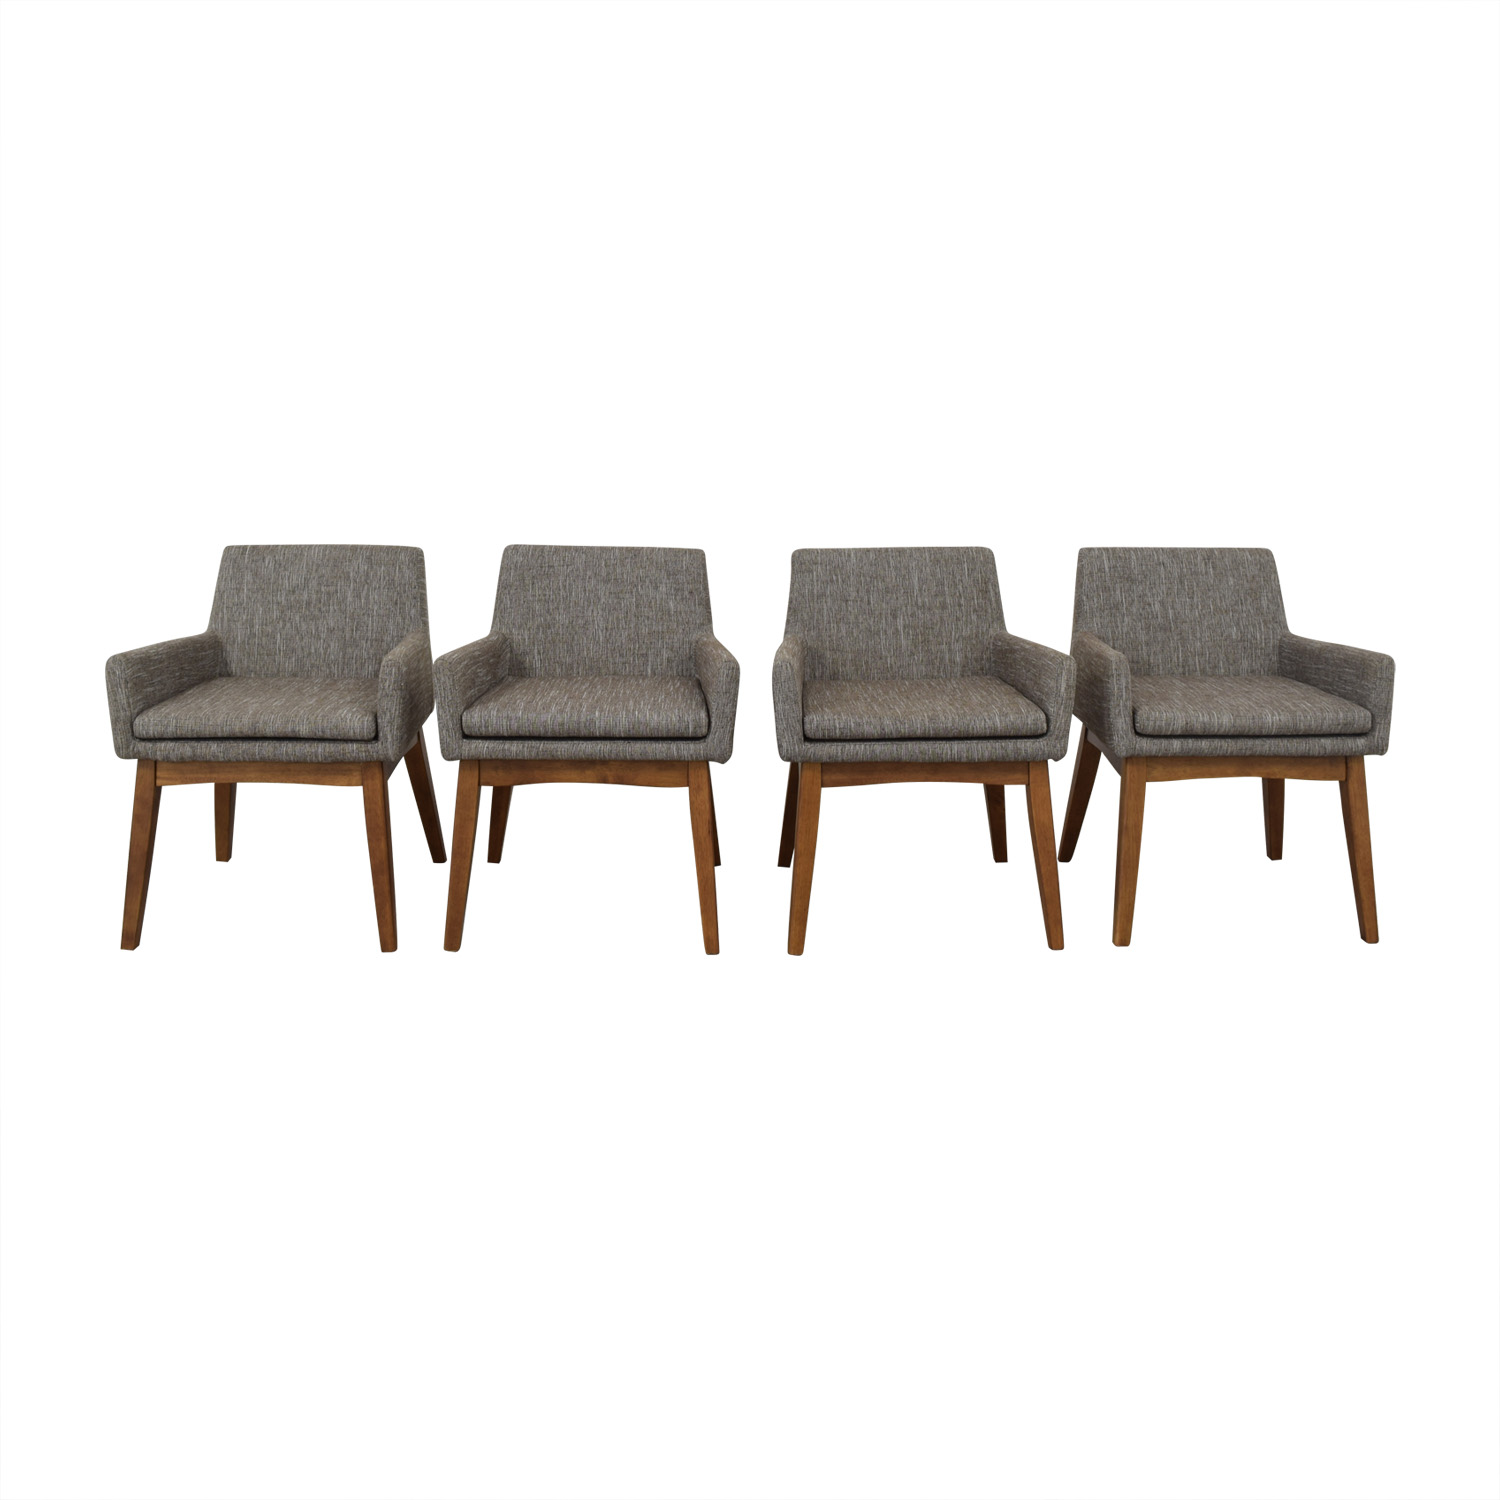 Article Feast Dining Chairs / Dining Chairs